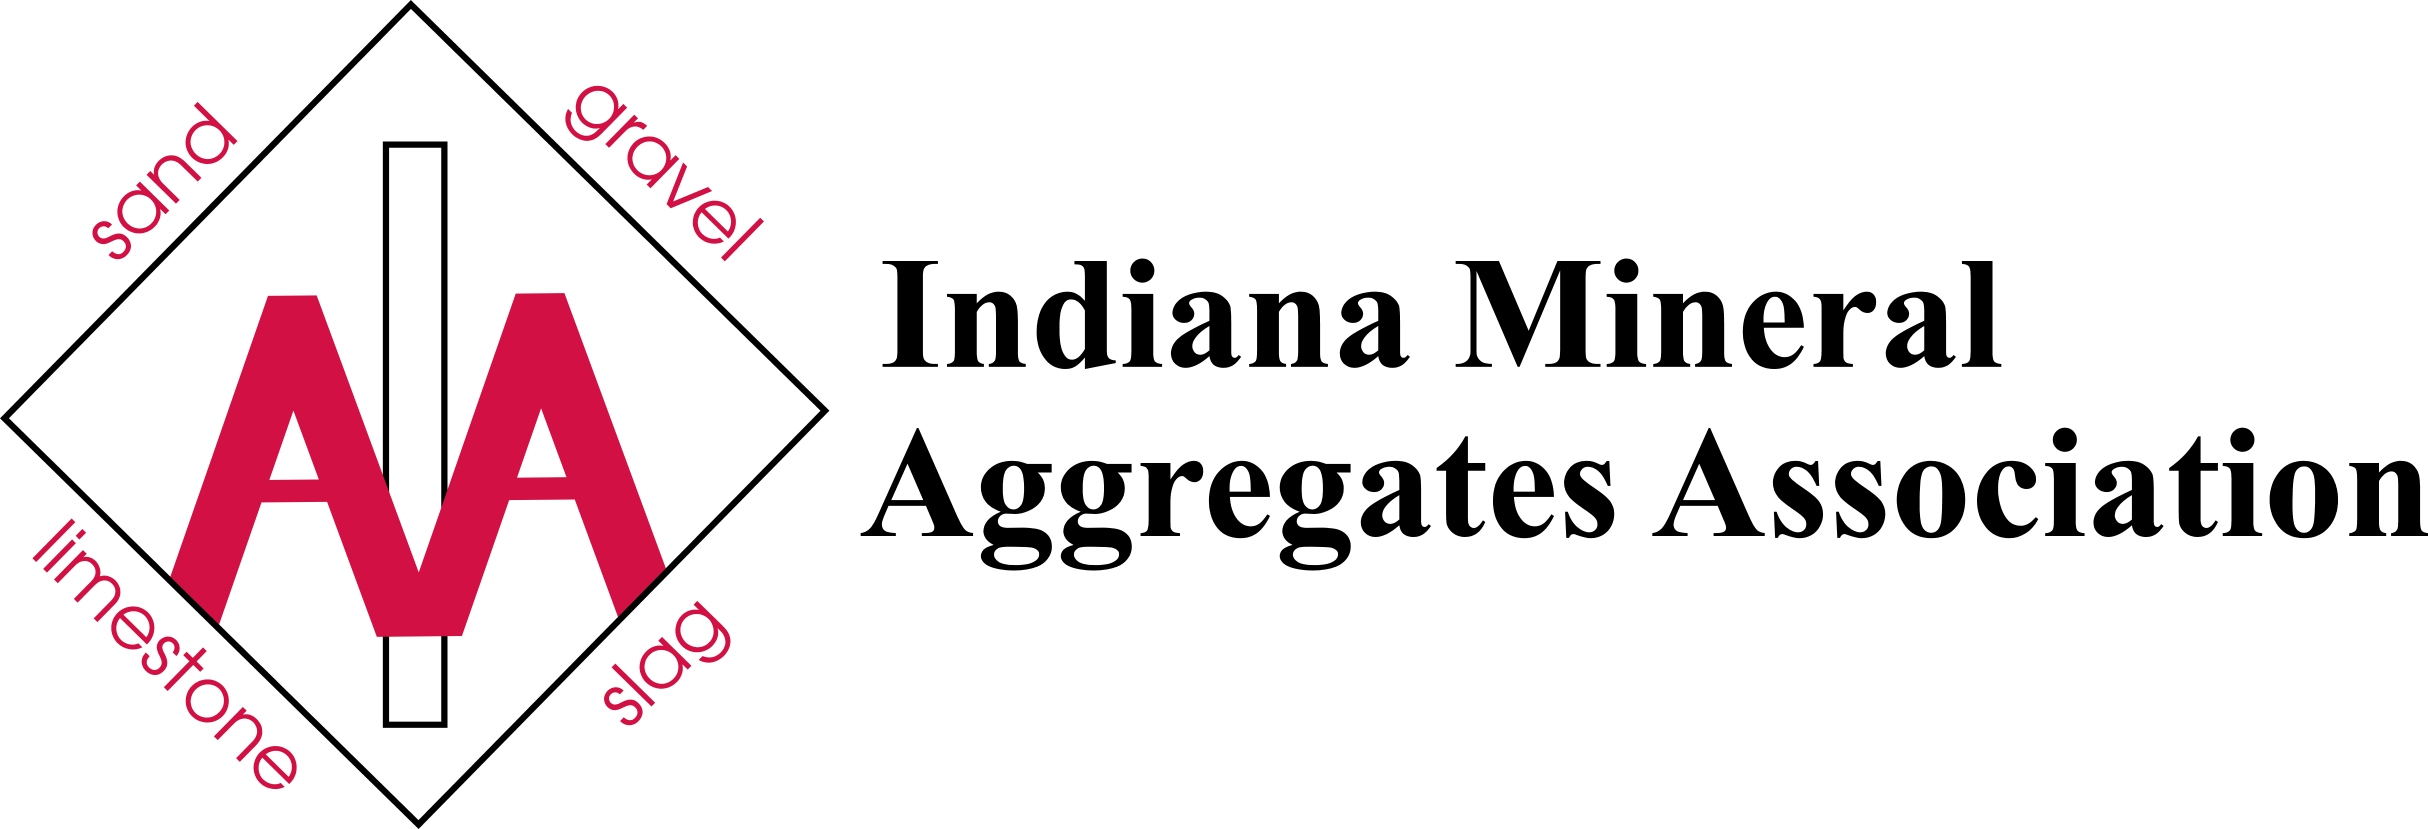 Indiana Mineral Aggregates Association